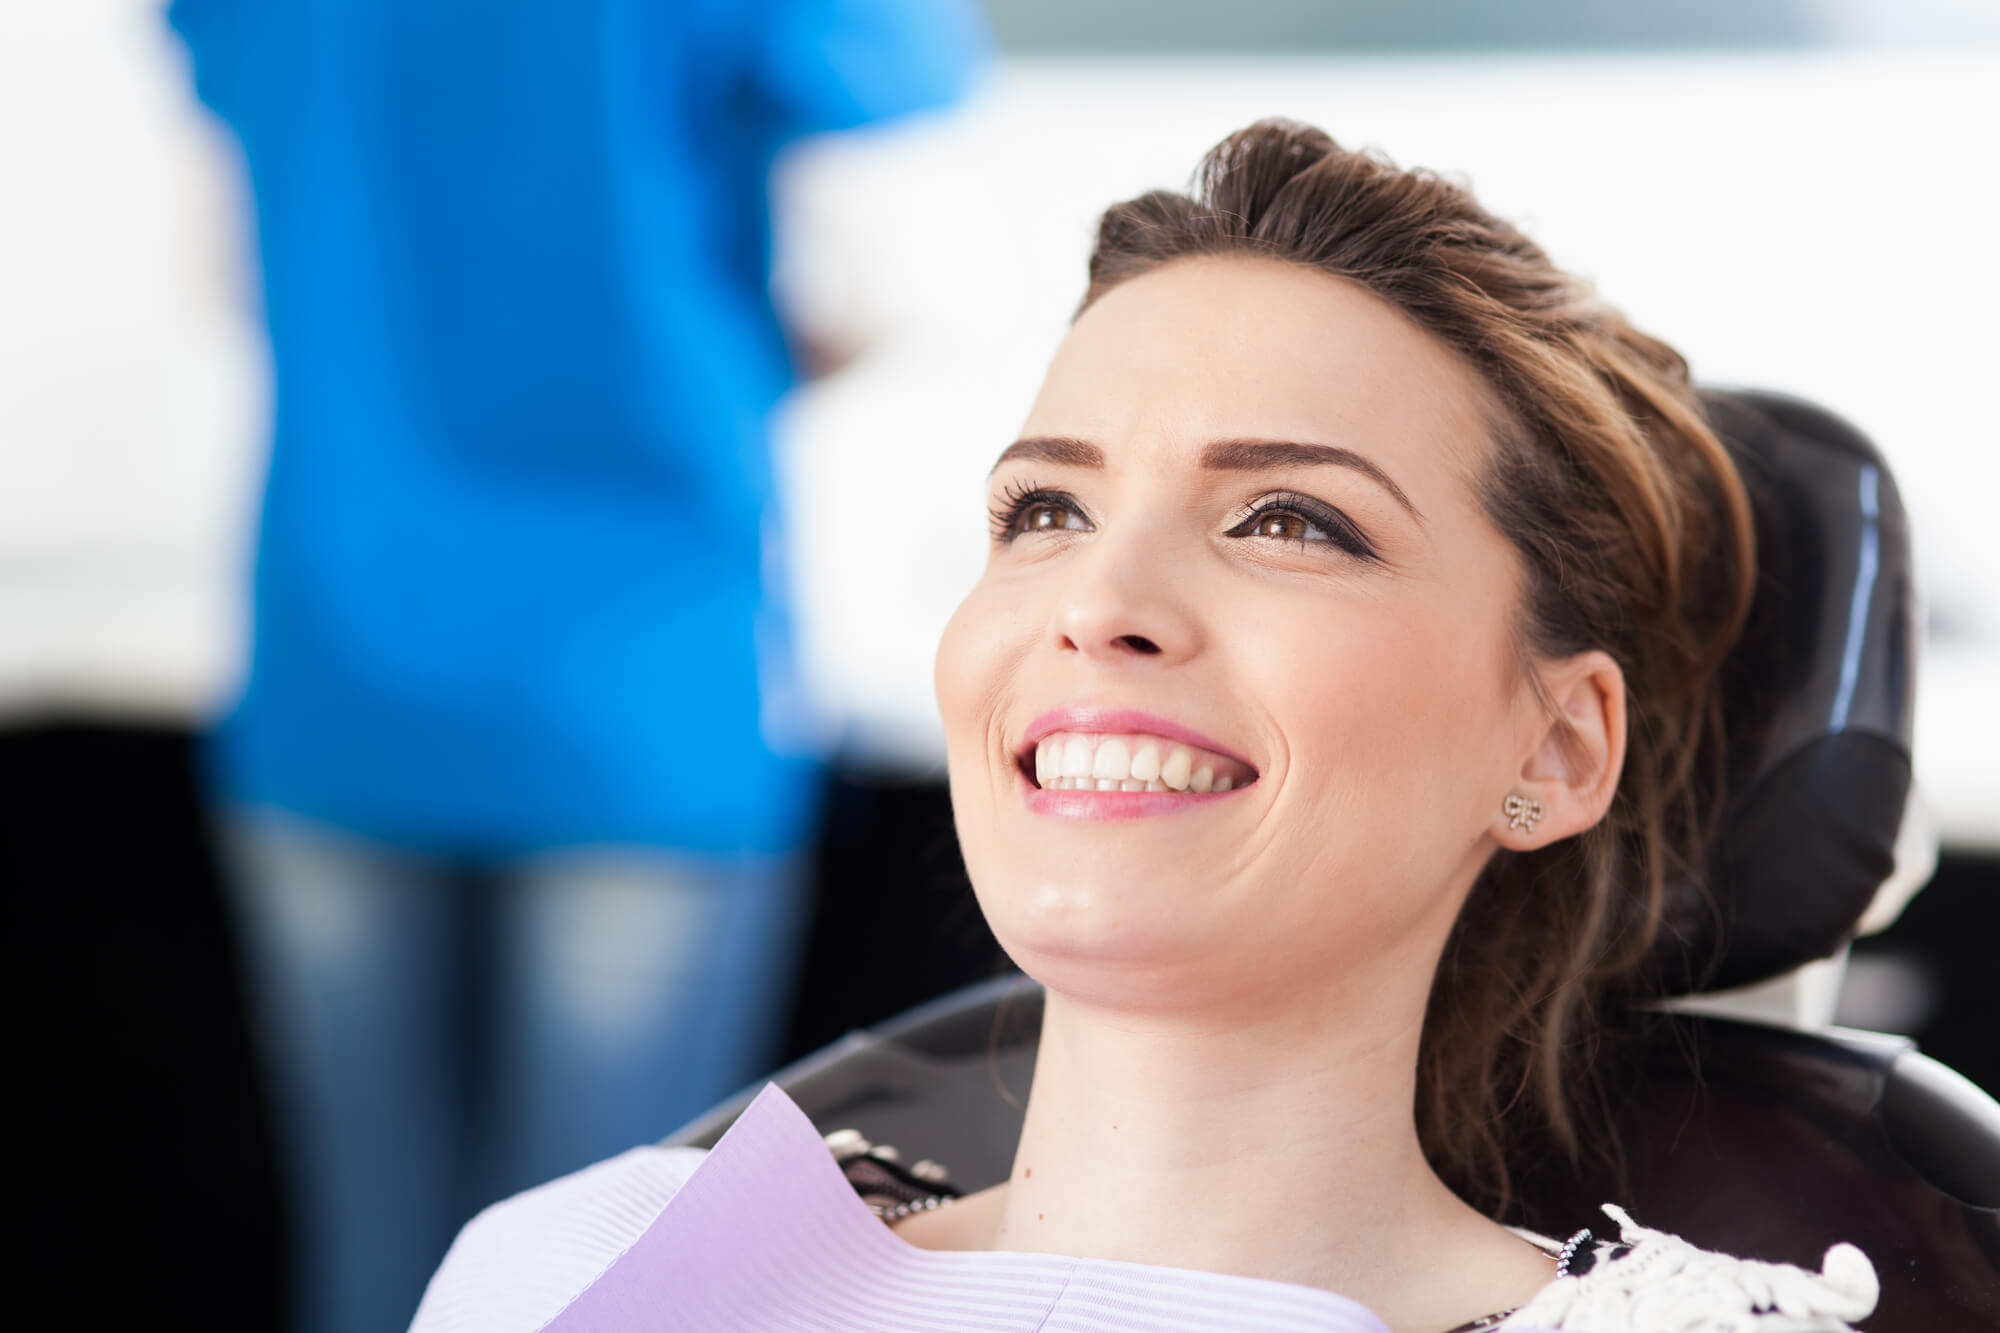 who offers dental sealants boynton beach?